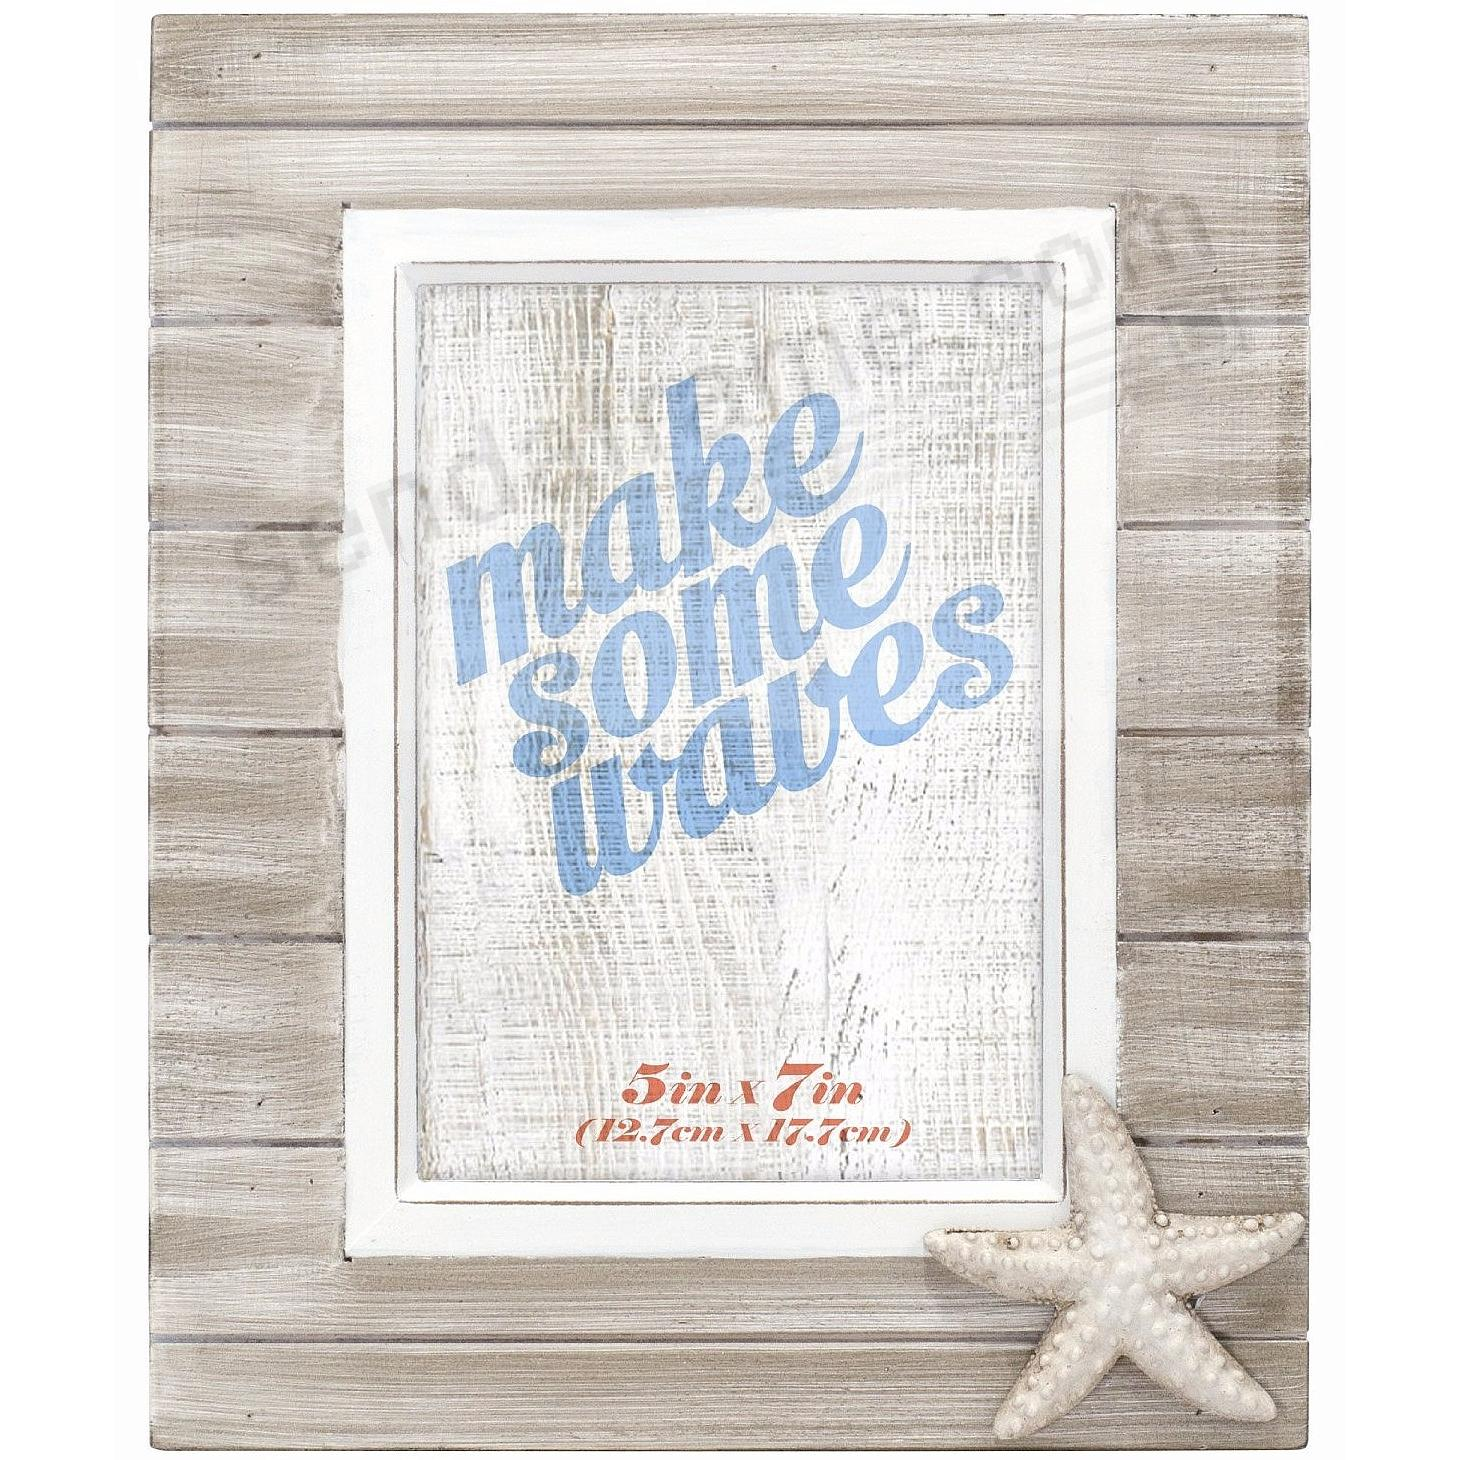 MARITIME STARFISH 5x7 frame by Malden® - Picture Frames, Photo ...